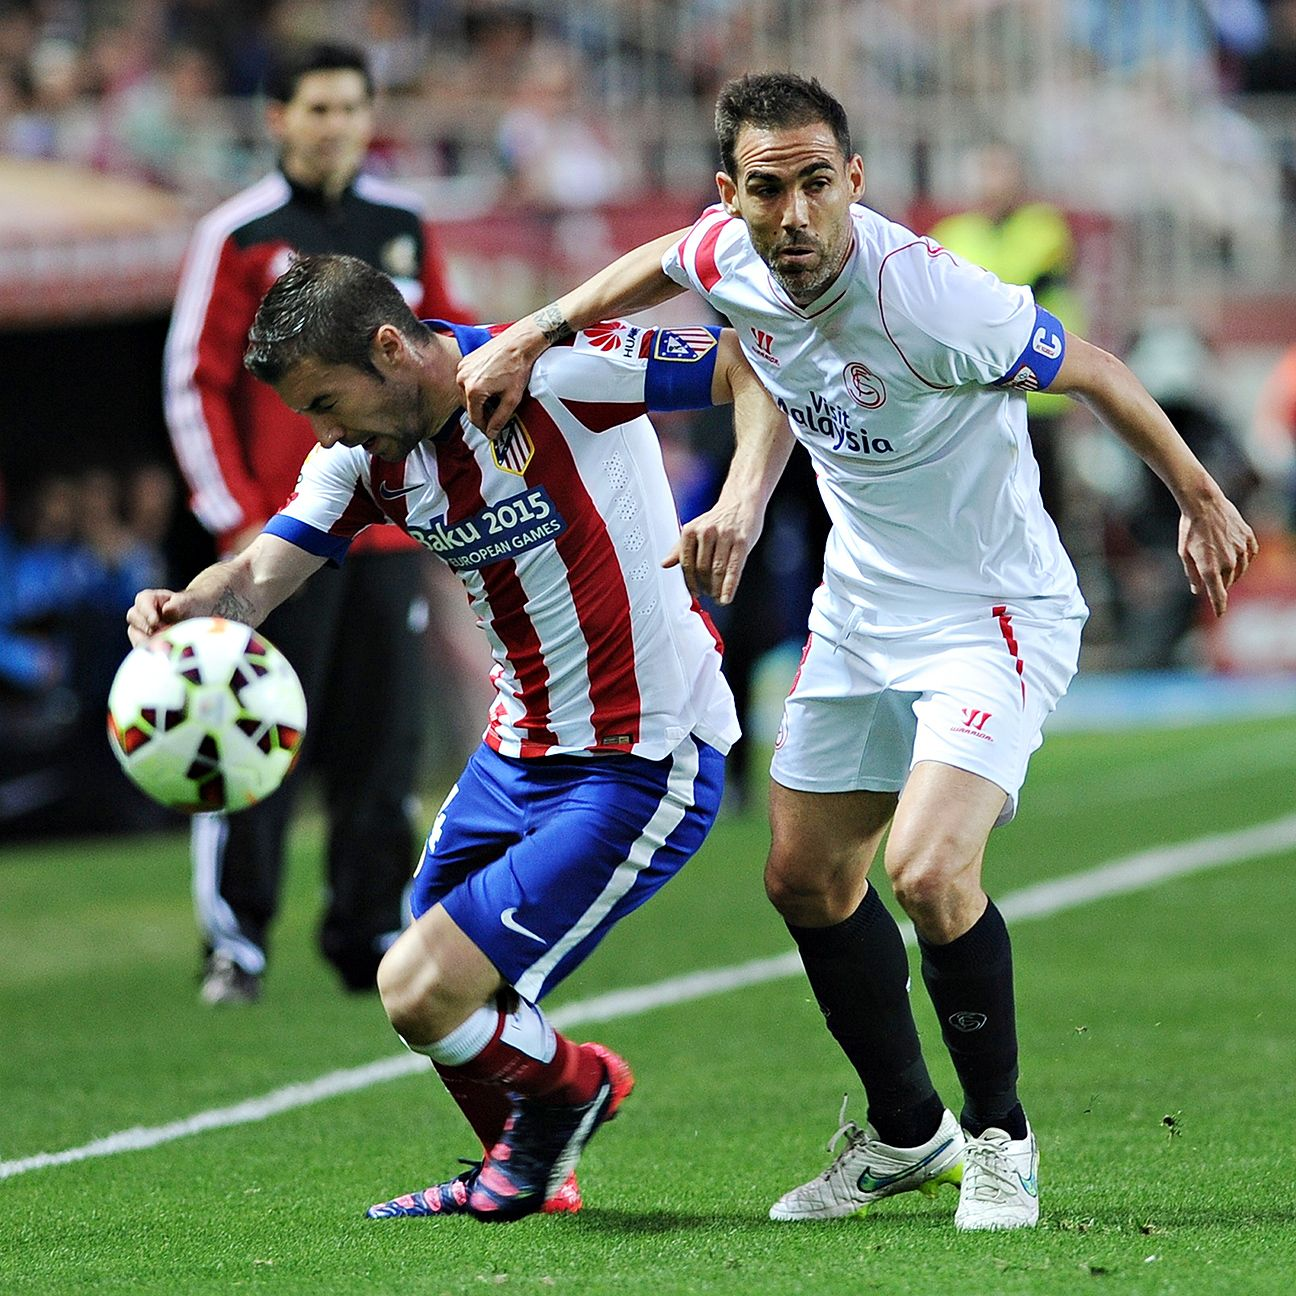 After a poor performance midweek in Germany, Gabi's subpar form carried into La Liga play.